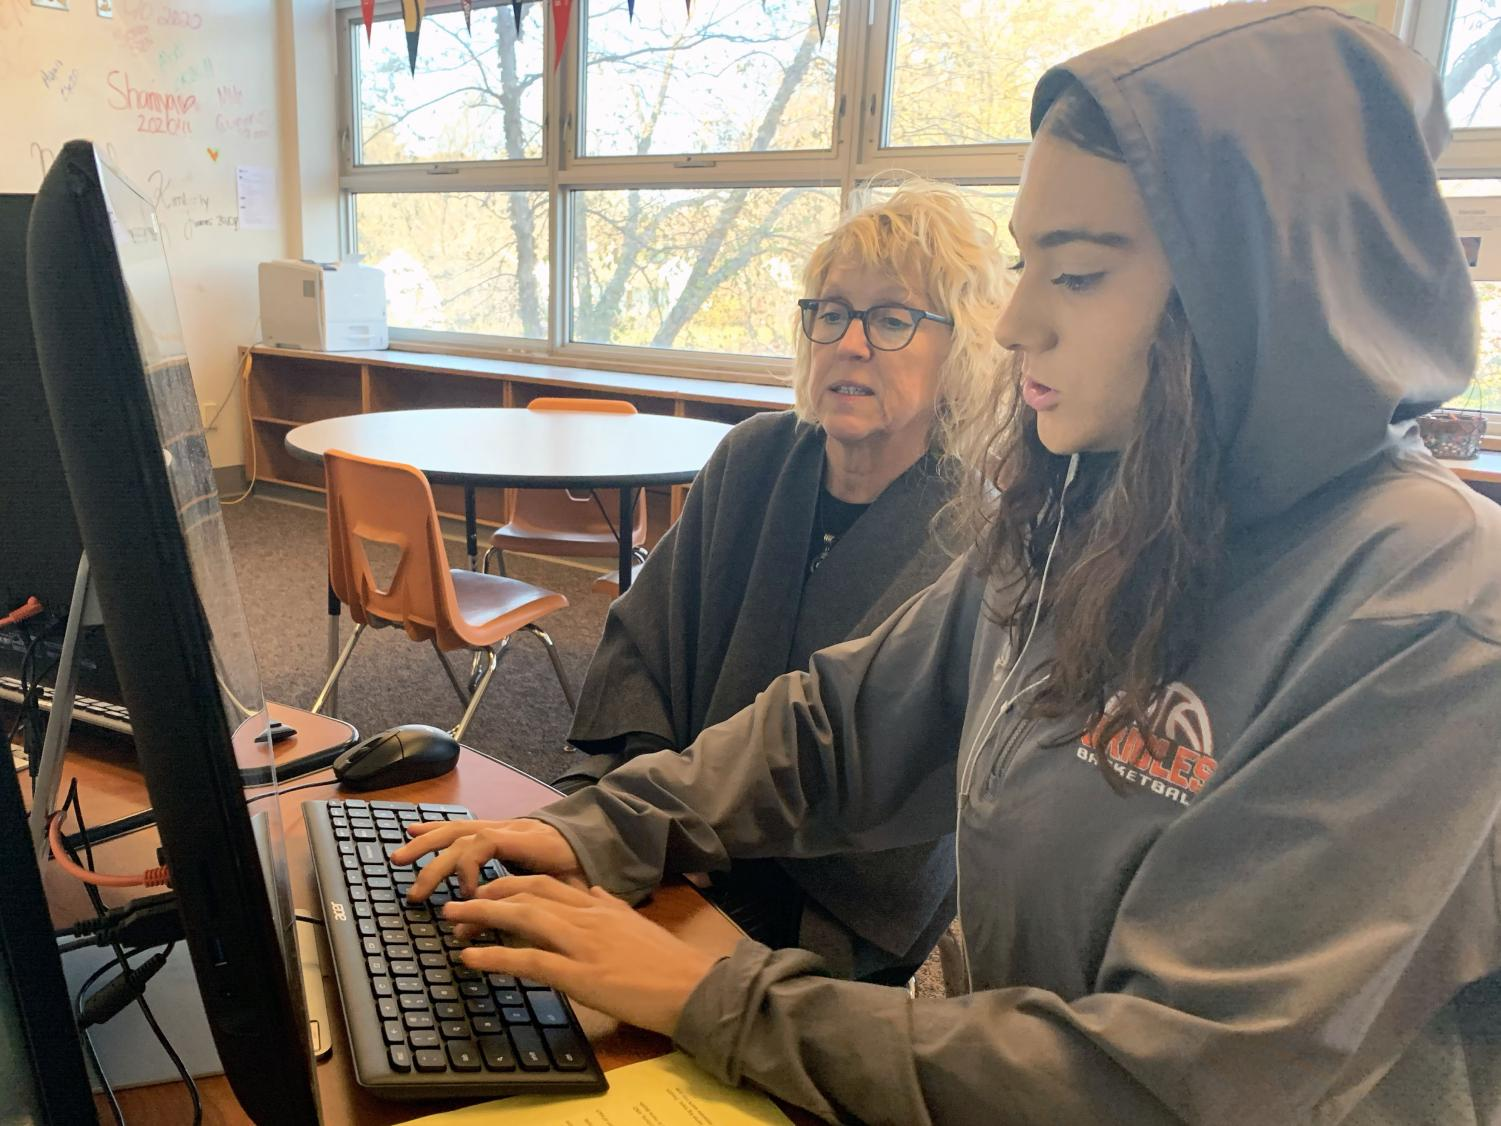 Adviser of the Learning Lab Kari Conroy helps senior Mya Quiñones with her essay Nov. 5. Conroy helps students with a variety of writing related tasks.